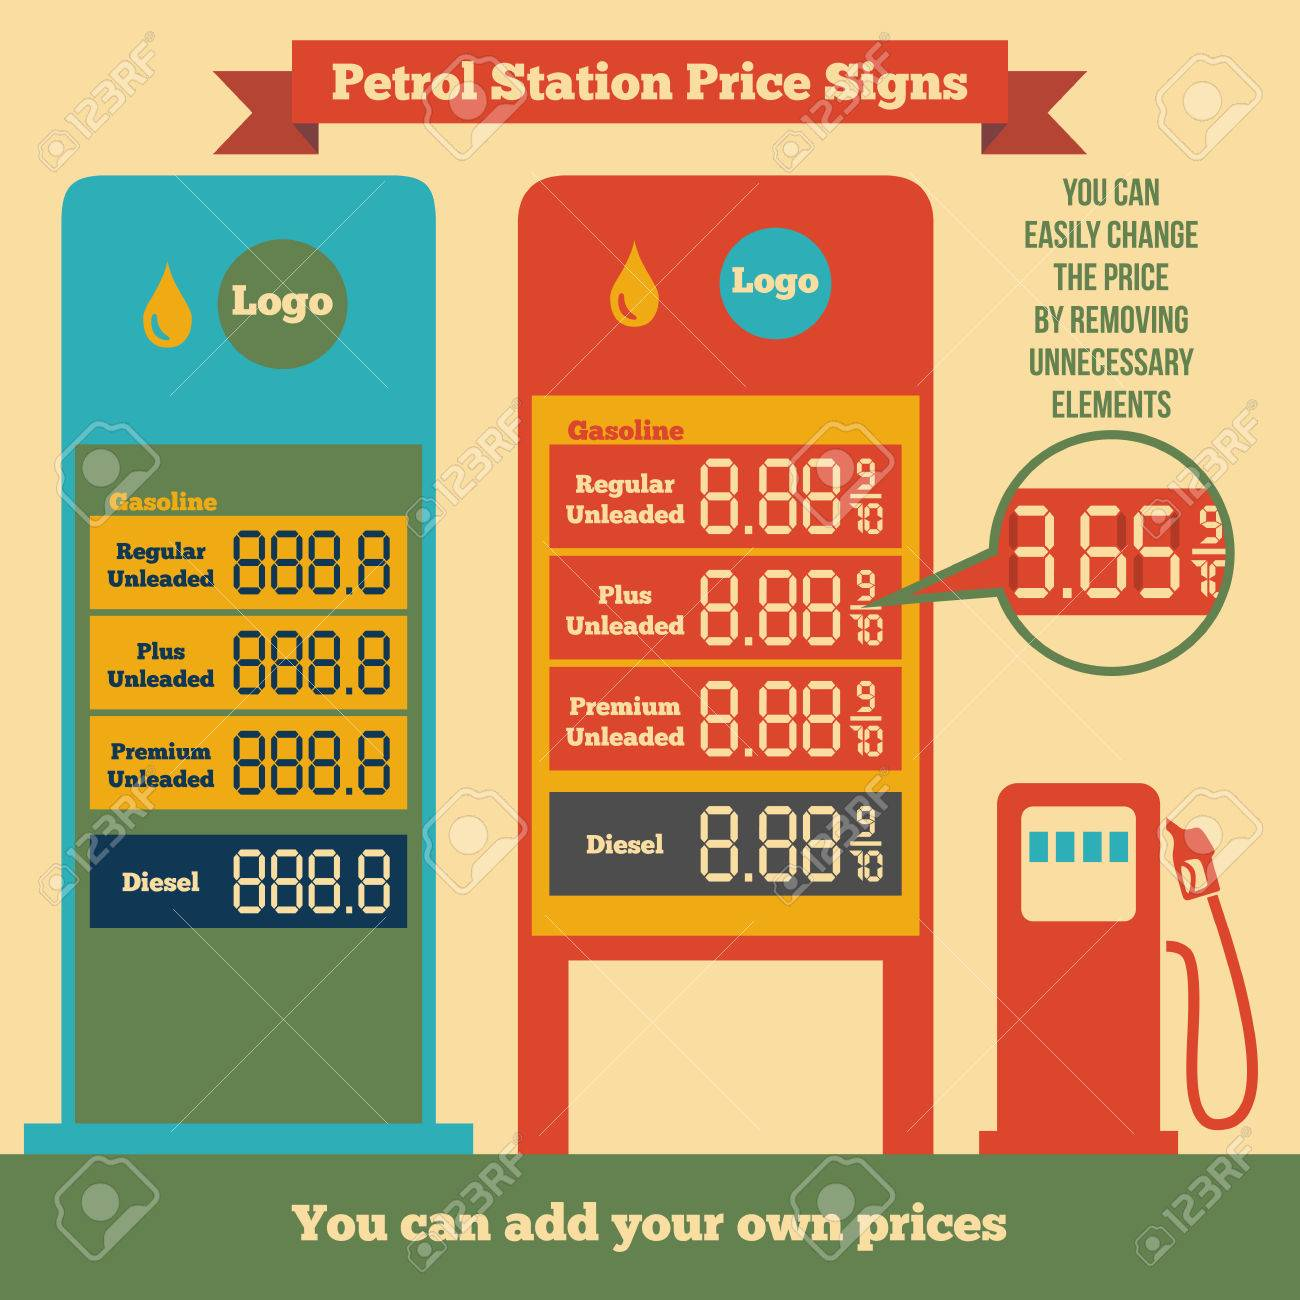 Petrol station price signs where you can add your own prices